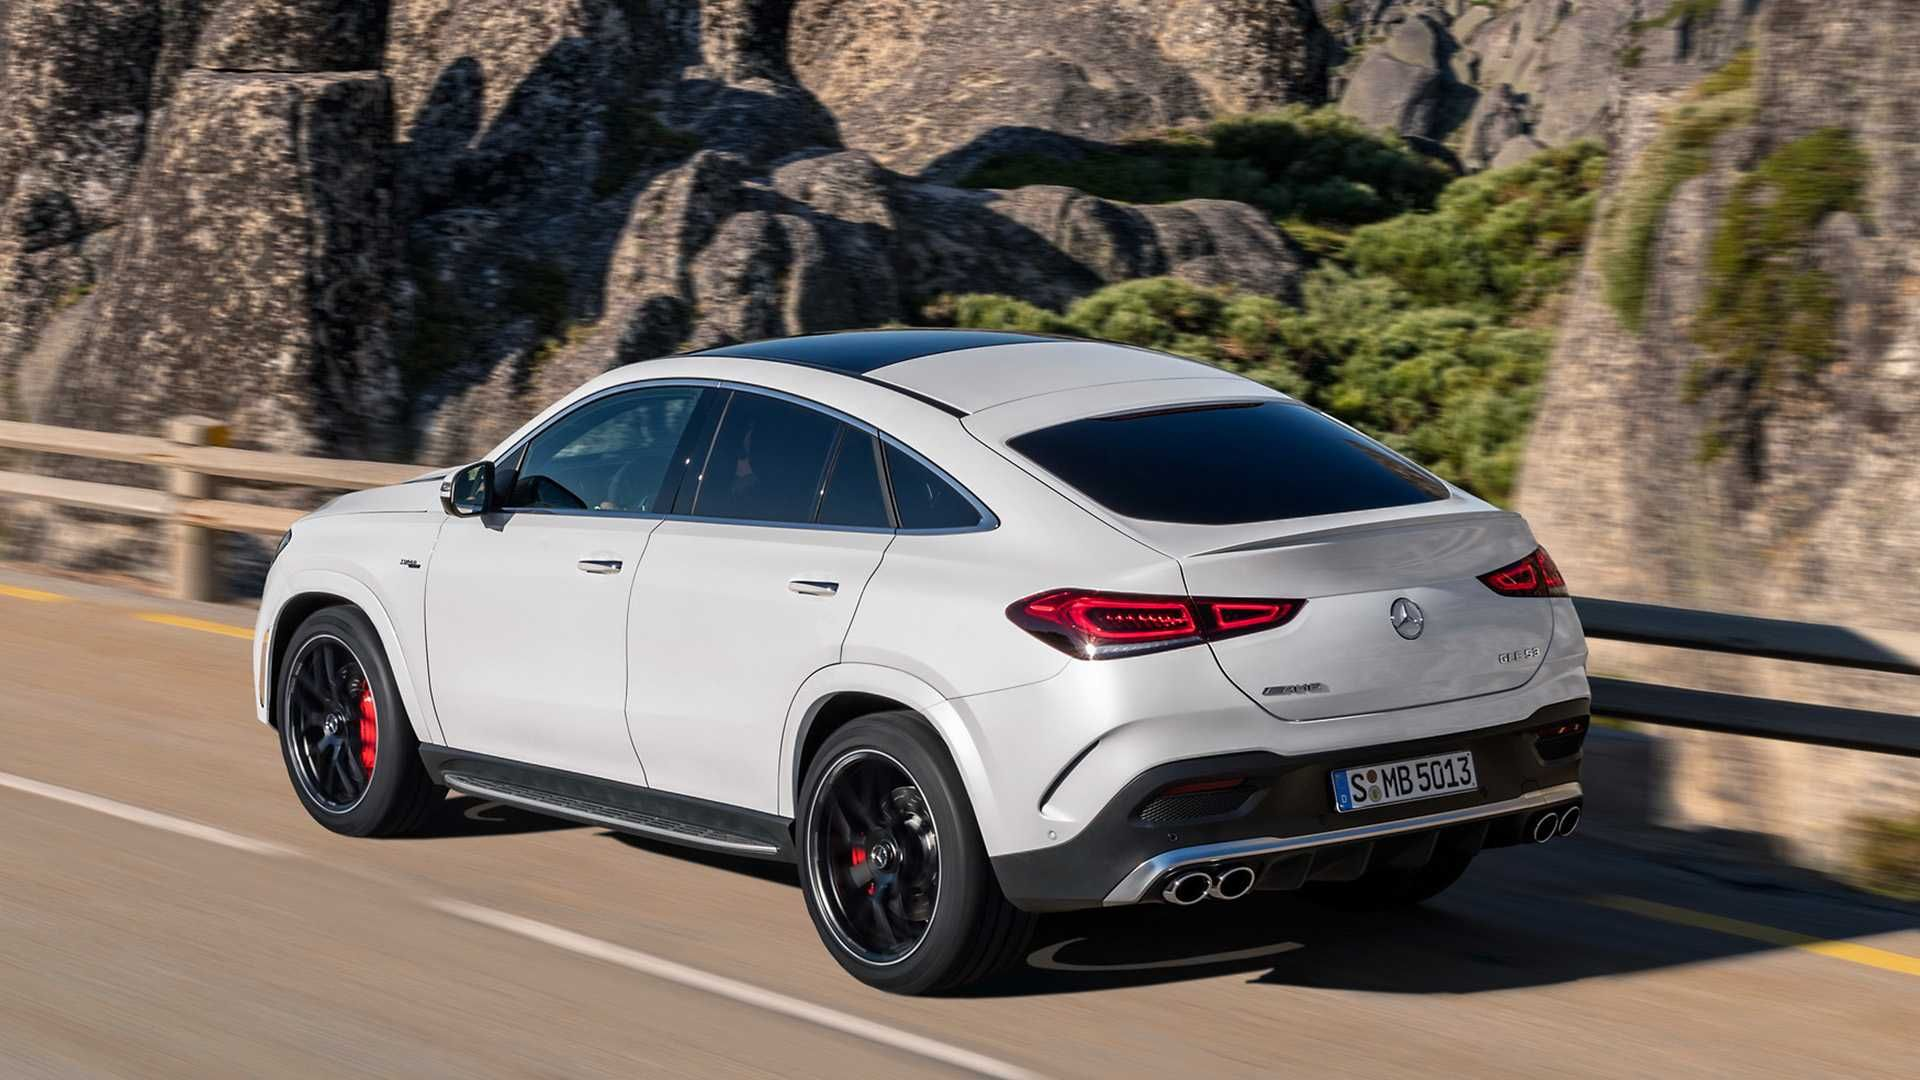 33+ Gle coupe 2020 colors ideas in 2021